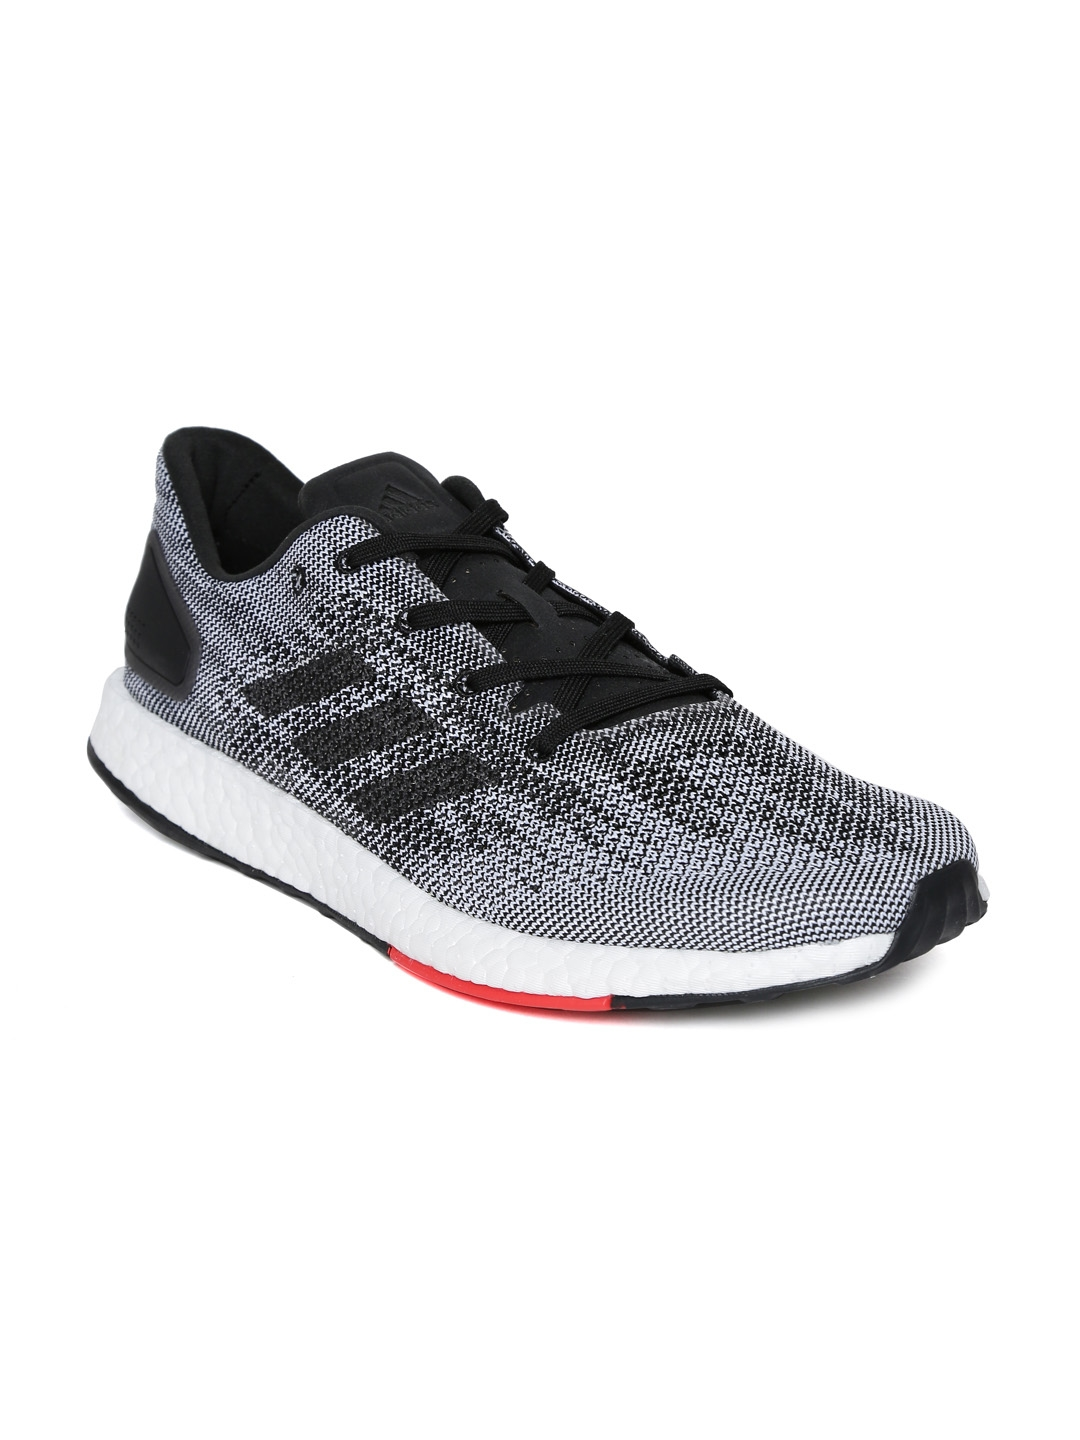 9a01371115c05 Buy ADIDAS Men Black   White PUREBOOST DPR Running Shoes - Sports ...